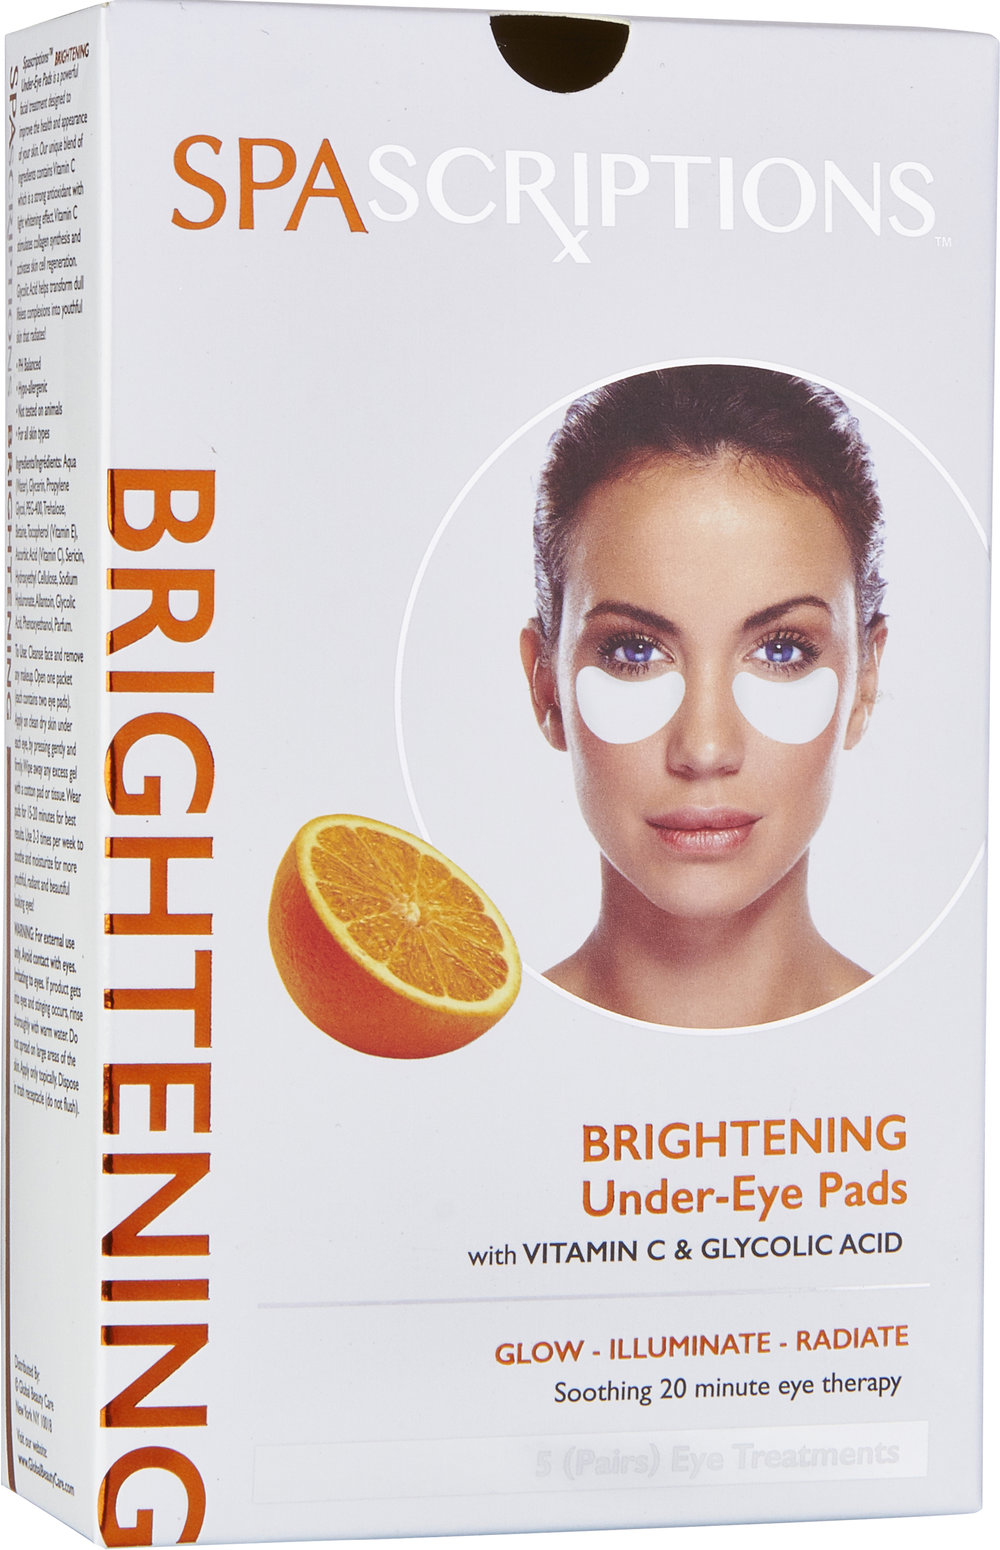 Spascriptions Brightening Under Eye Pads